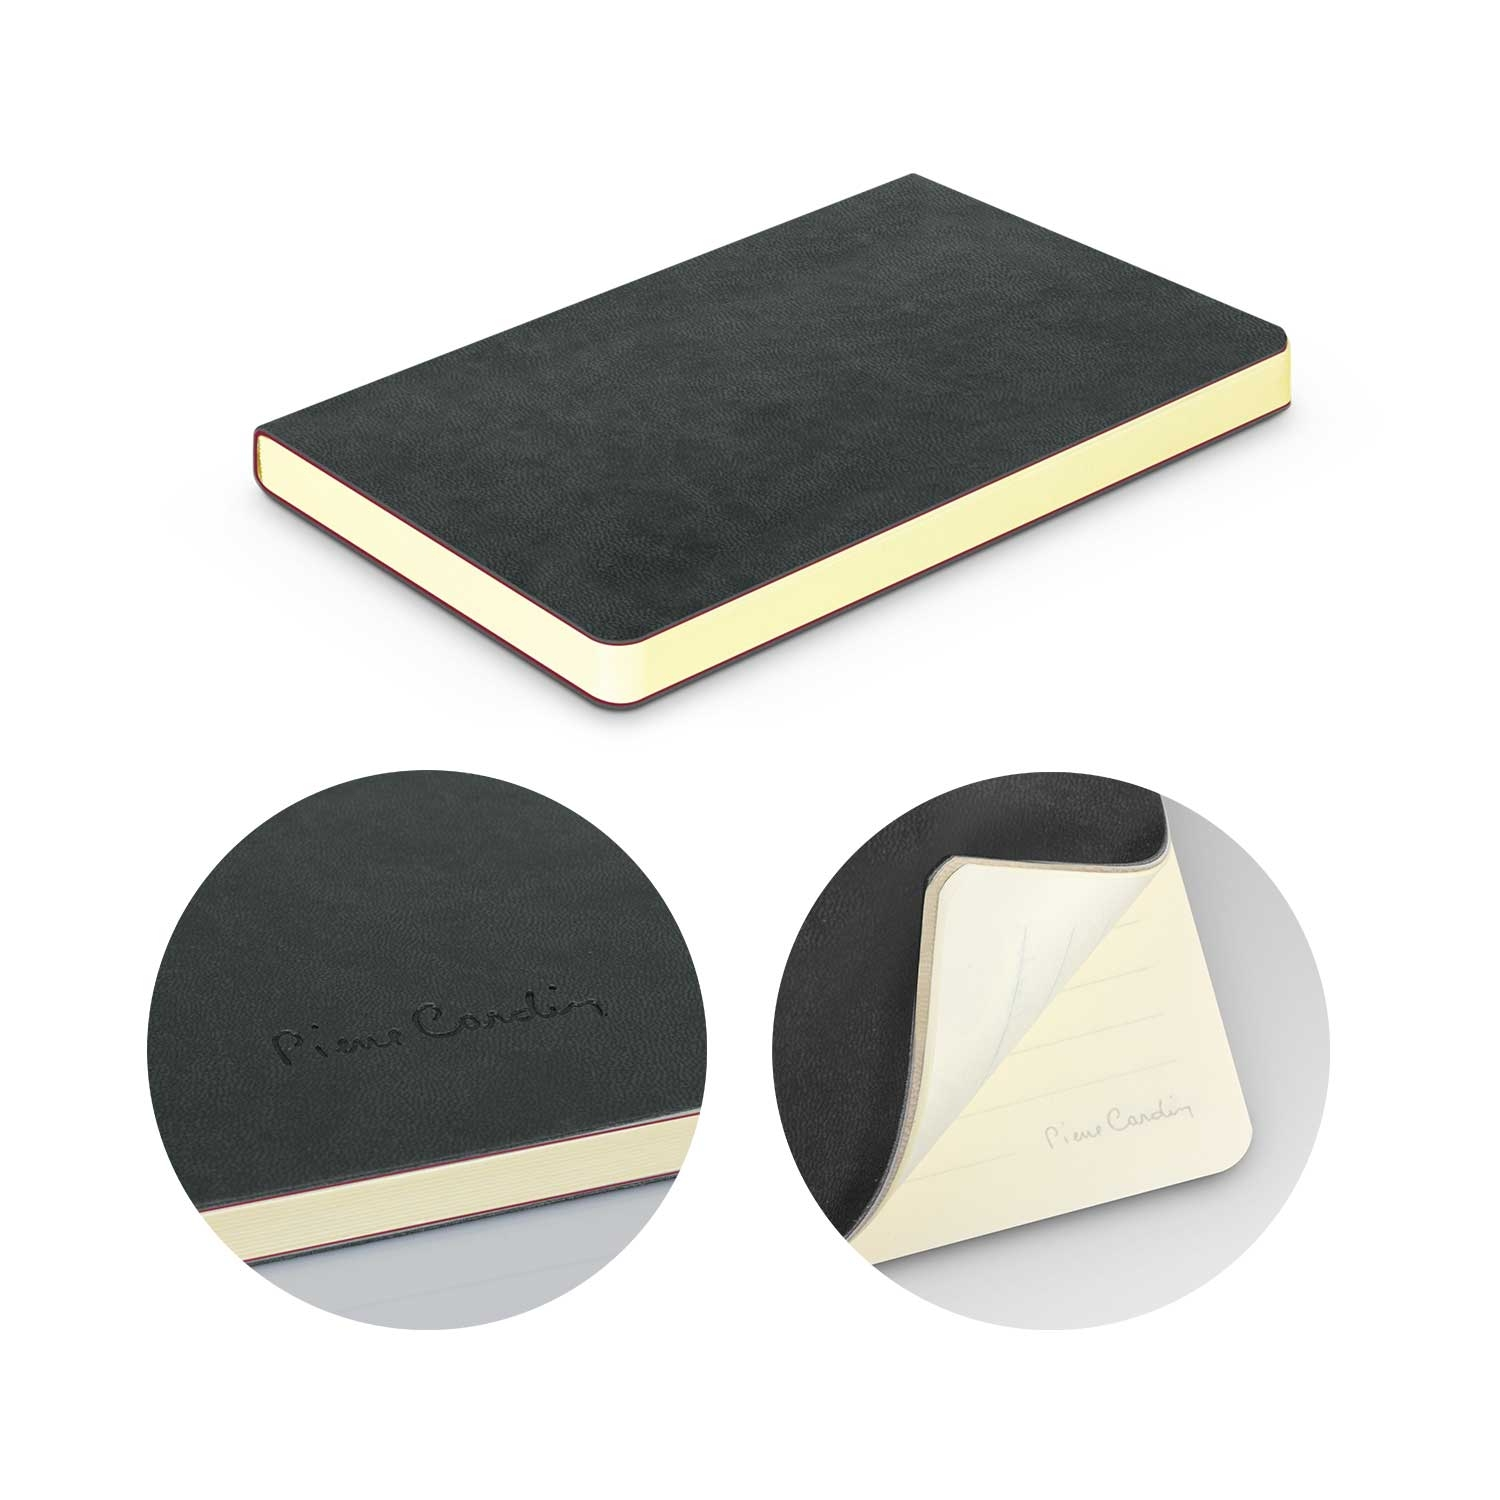 Pierre Cardin Soft Cover Notebook - Small